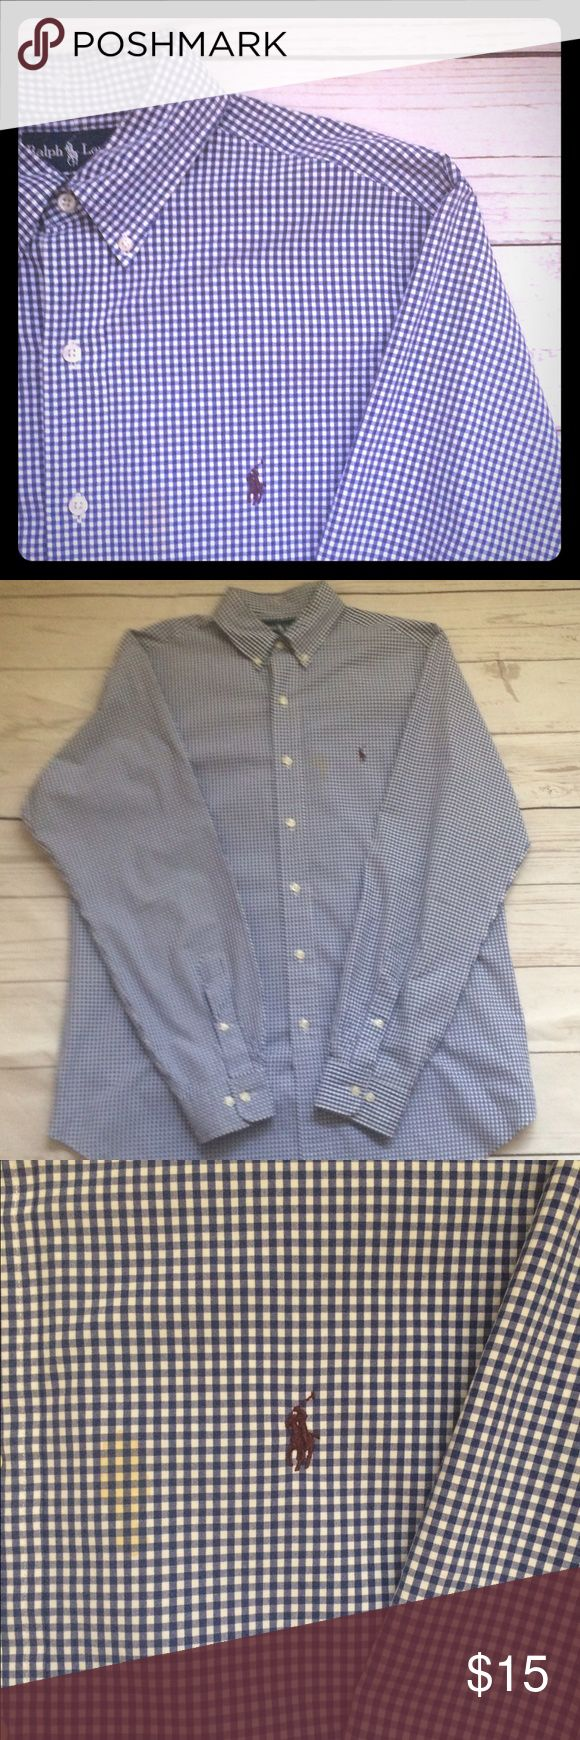 "🎄SALE🎄Polo•Ralph•Lauren•S/M•Shirt• 🎄SALE🎄no offers will be accepted or further reductions will be taken 🎄men's  long sleeve button front 100% cotton oxford shirt. Size 16-L Classic Fit per tag:measurements below. Signature pony at chest. No fraying at cuffs or collar & collar. Stain on shirt as pictured•  Please refer to pictures & measurements.  Chest: 25"" Length: 31"" Sleeve: 35"" Shoulder: 19"" Polo by Ralph Lauren Shirts Casual Button Down Shirts"